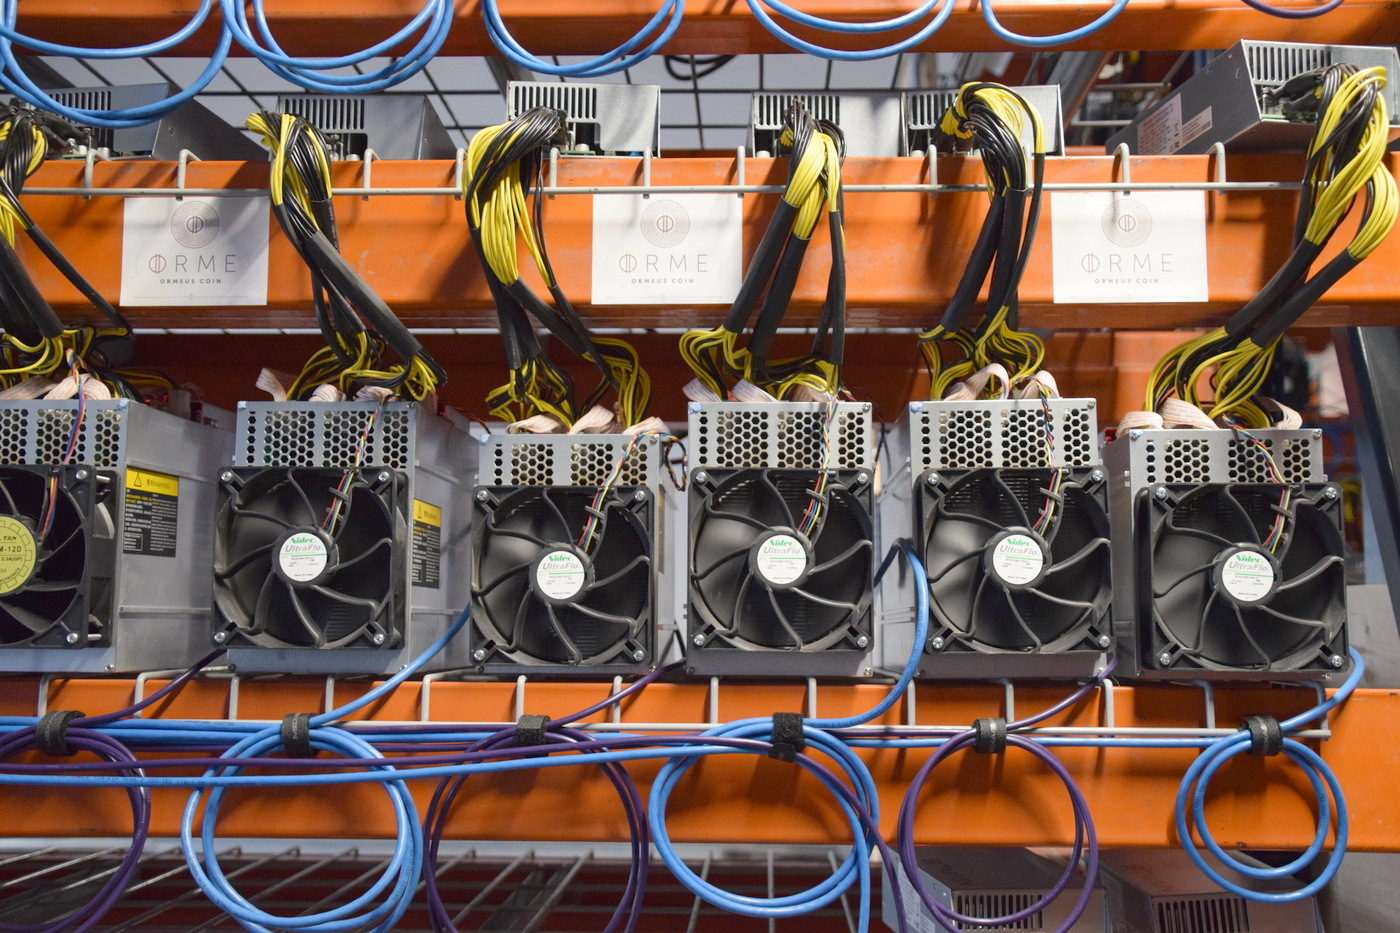 Bitcoin miners brainstorm - and face skepticism - at